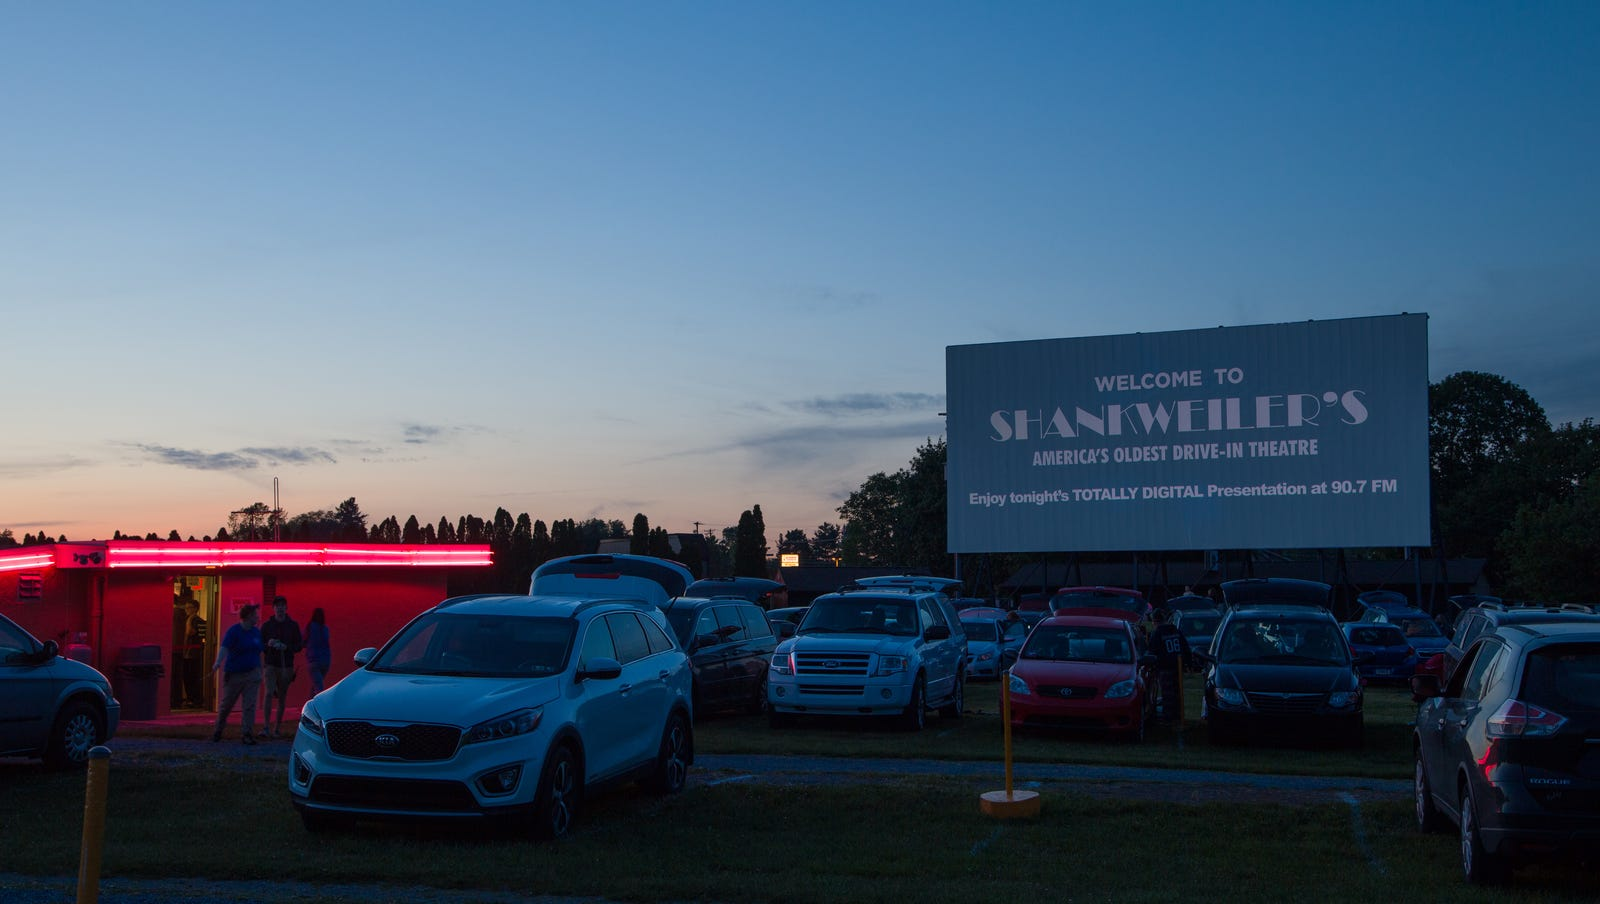 'Aladdin' is playing under the stars at most of these drive-ins this weekend